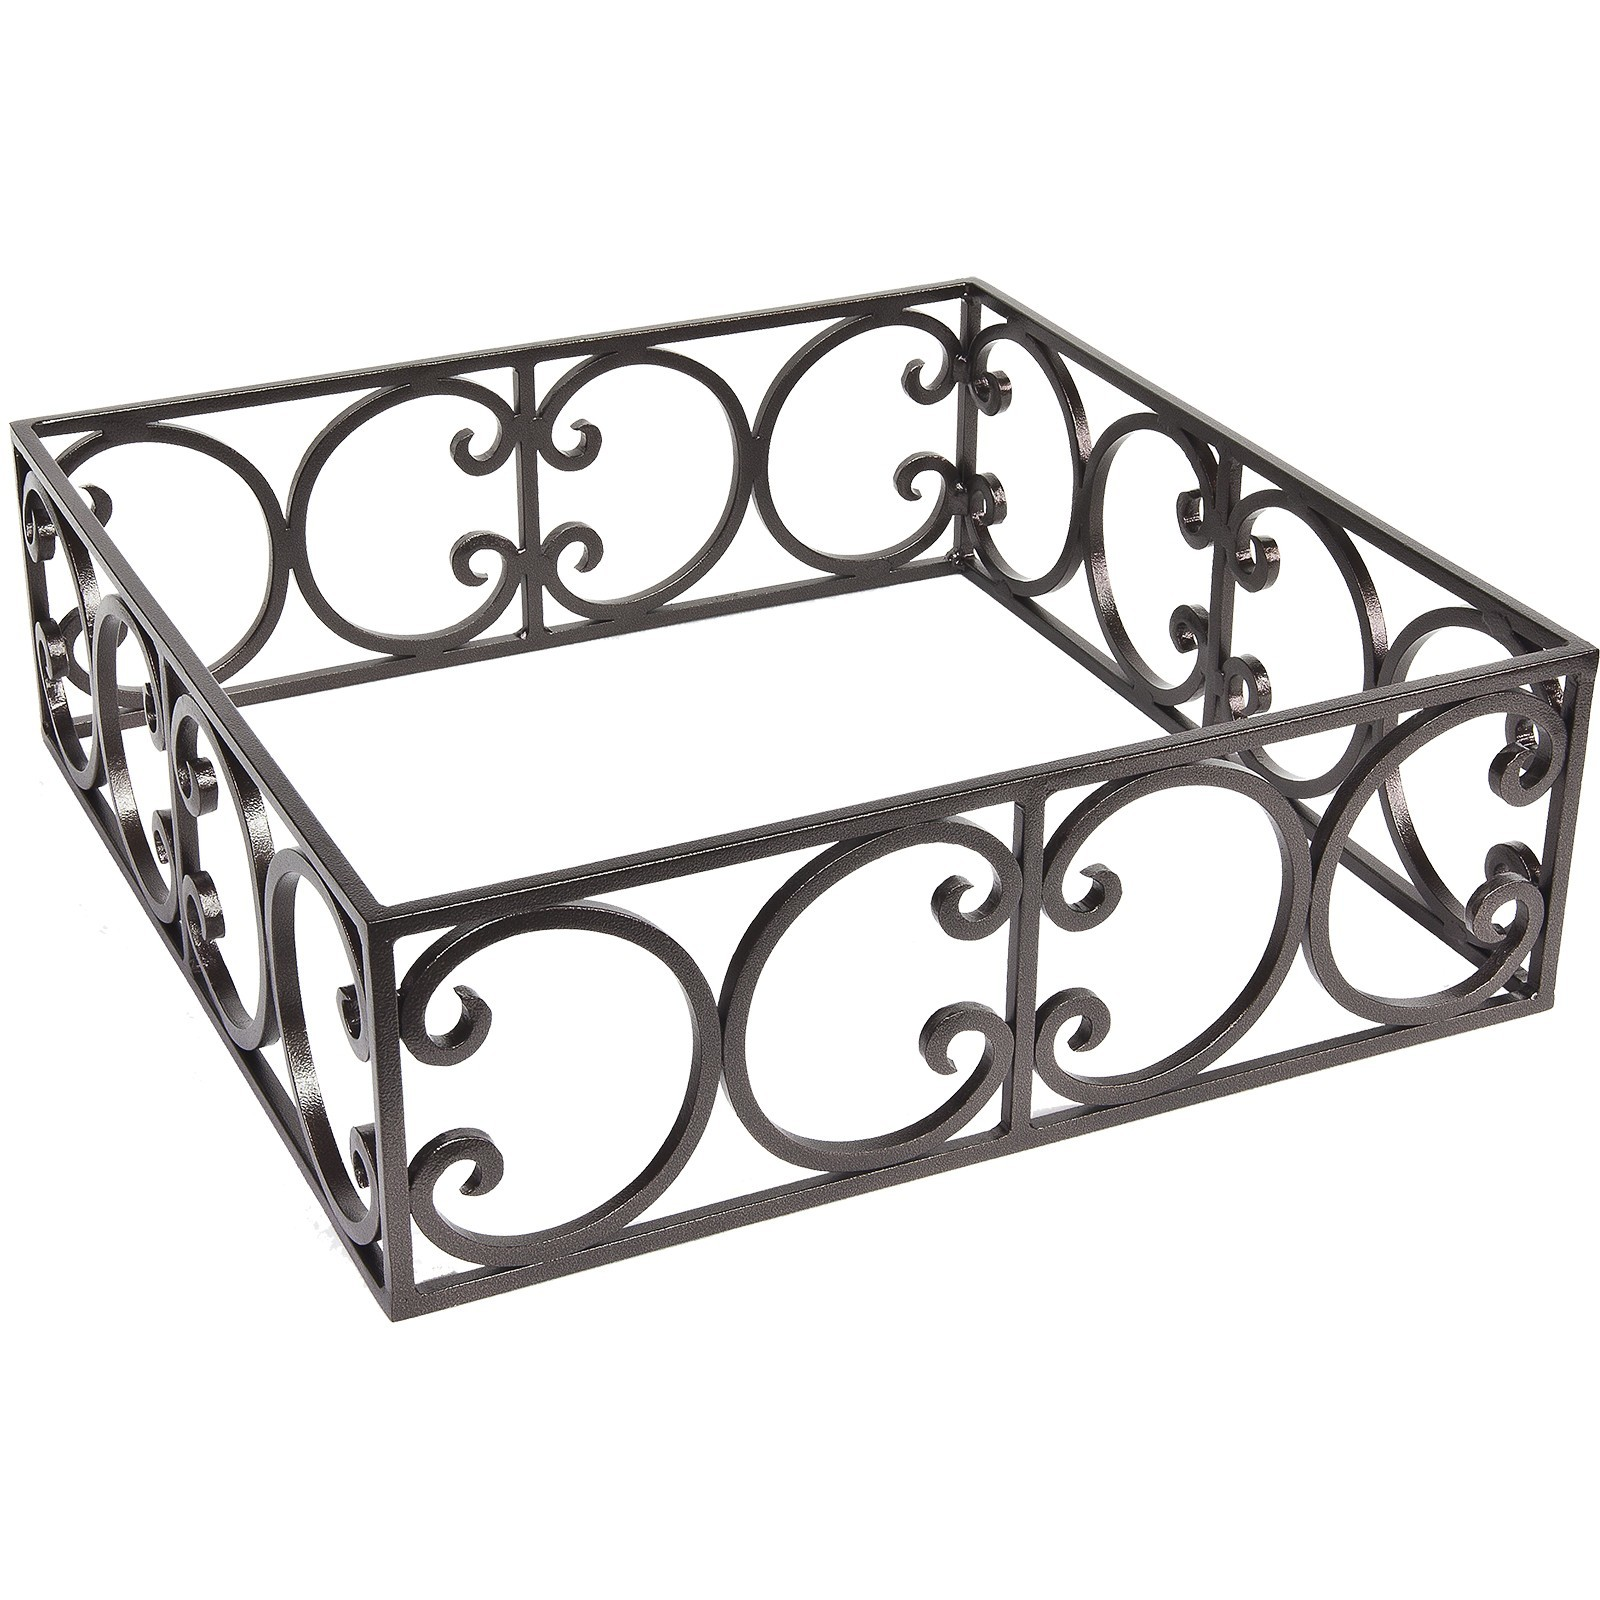 "Fire Pit Accessories Ornate Square Round Metal Fire Pit Guard fits 20"" Square Burner"